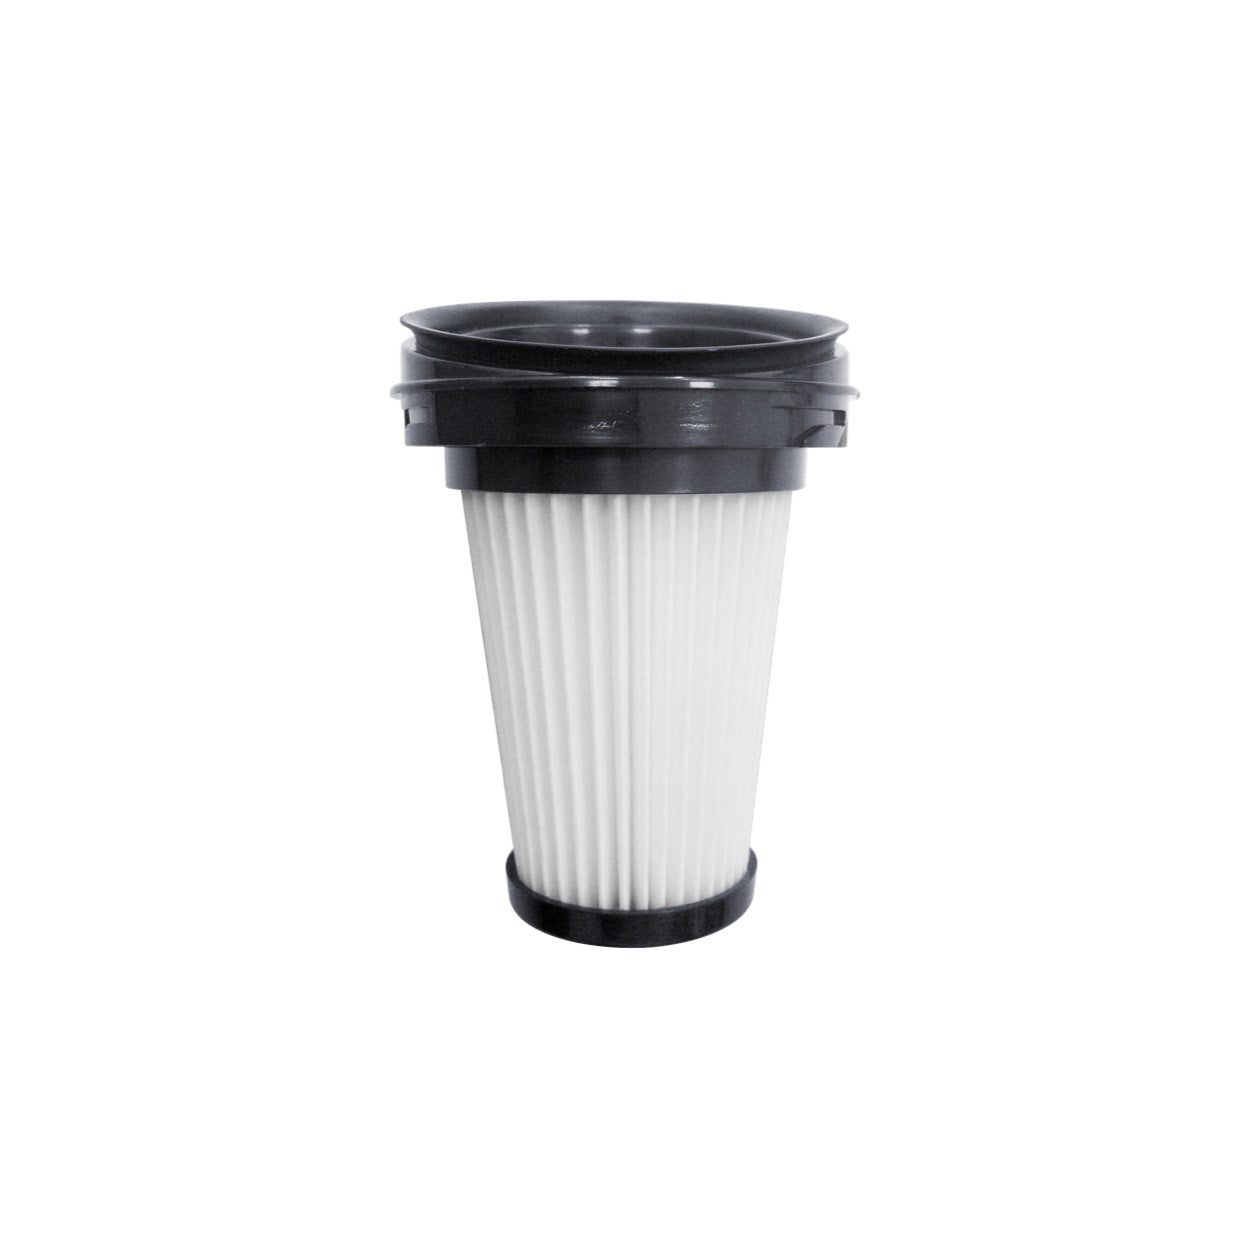 Vacuum Cleaner HEPA Filter for TYL-VC3926